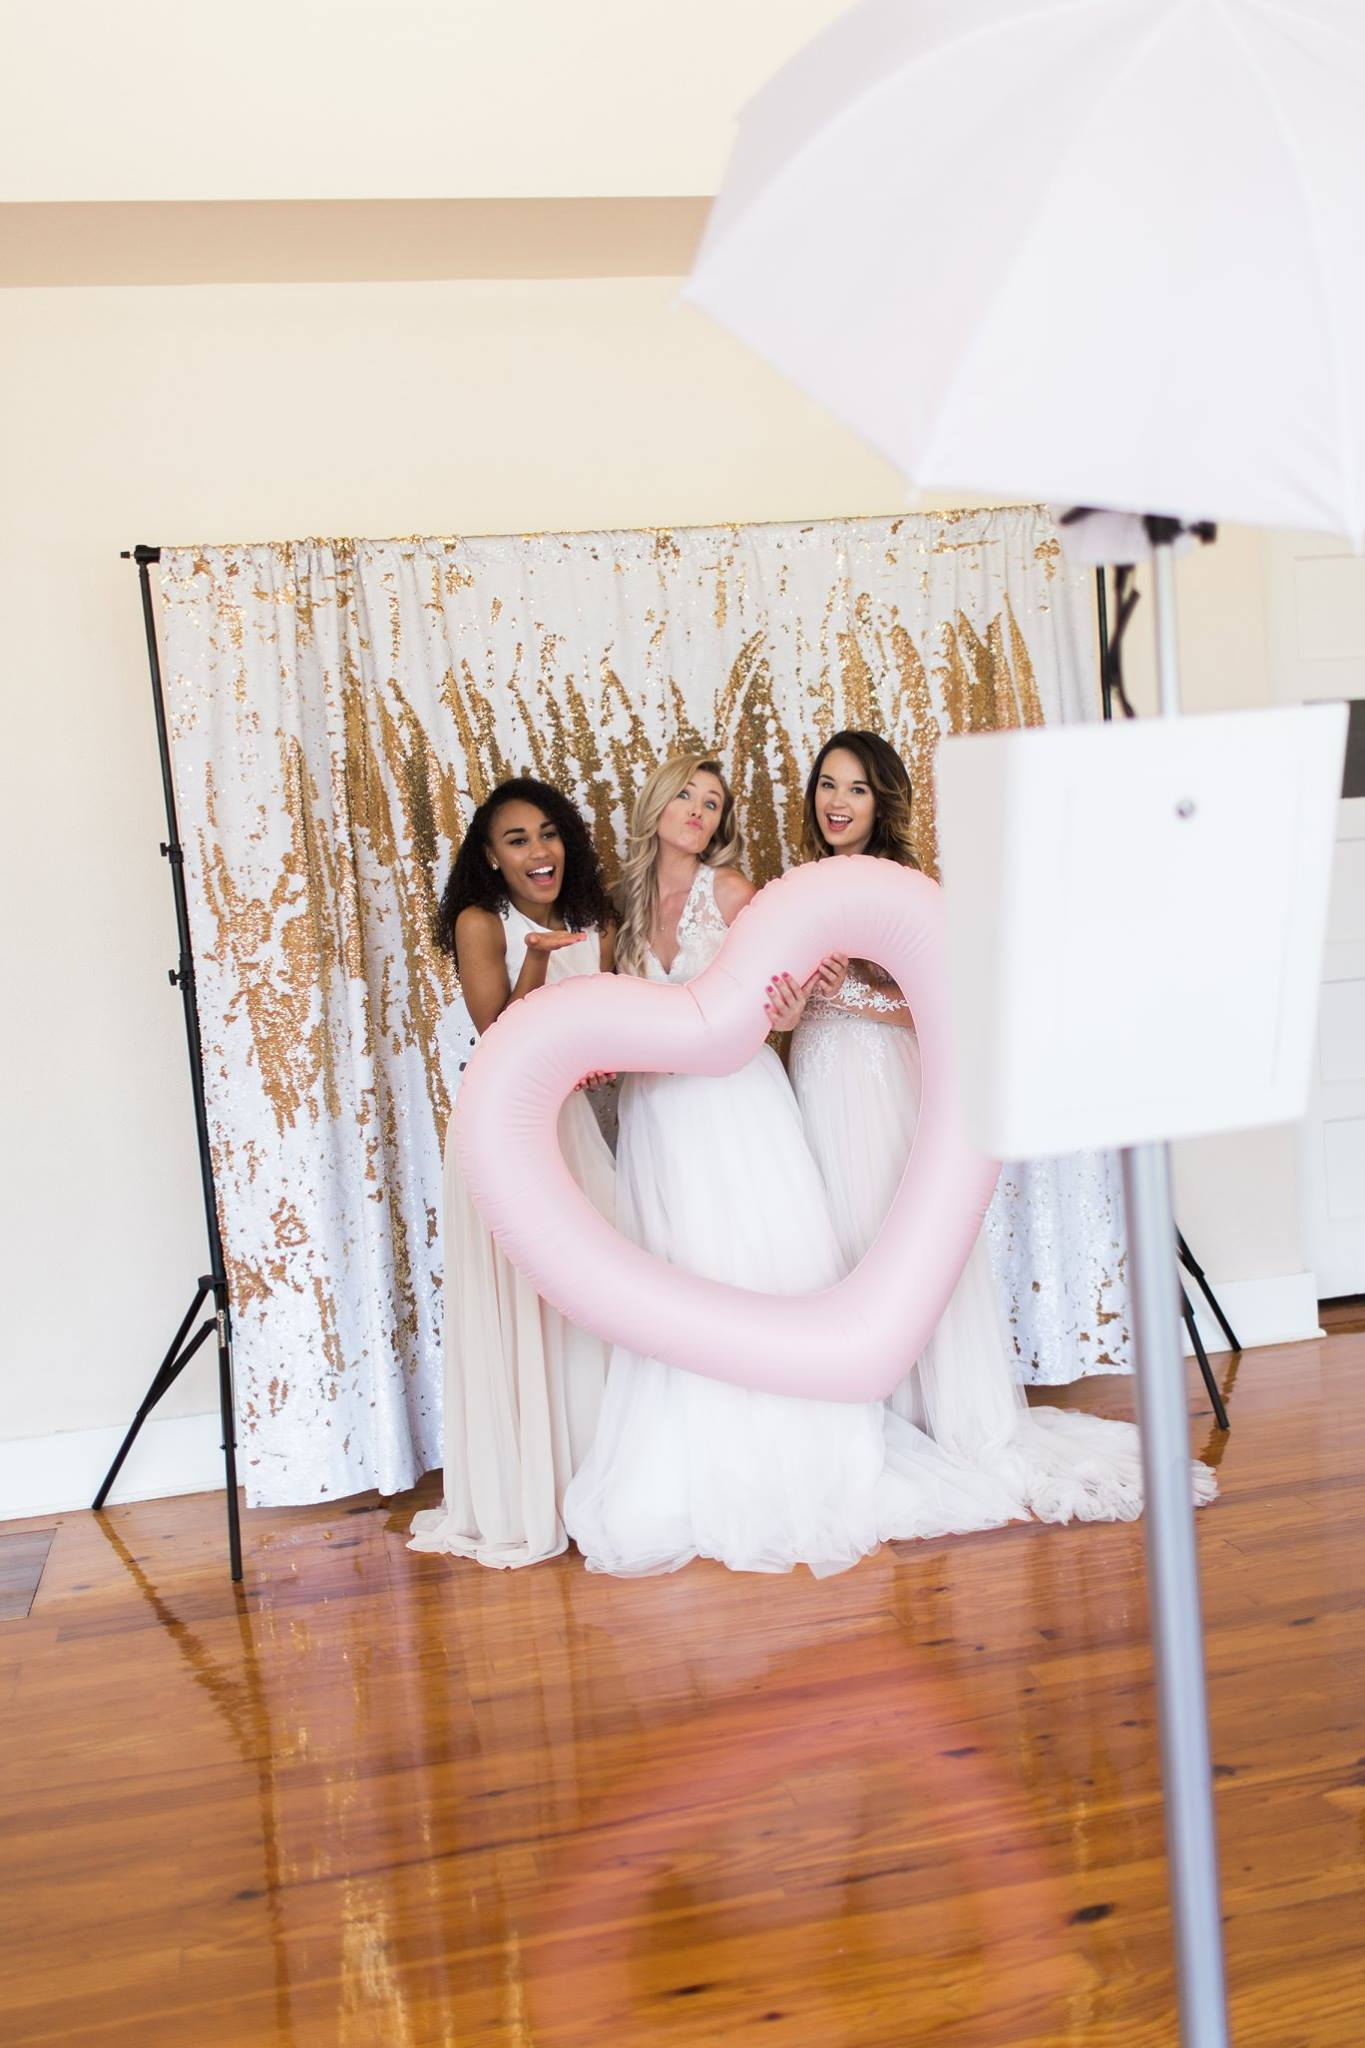 18 Great Things about a Photo Booth Business – Photobooth Supply Co